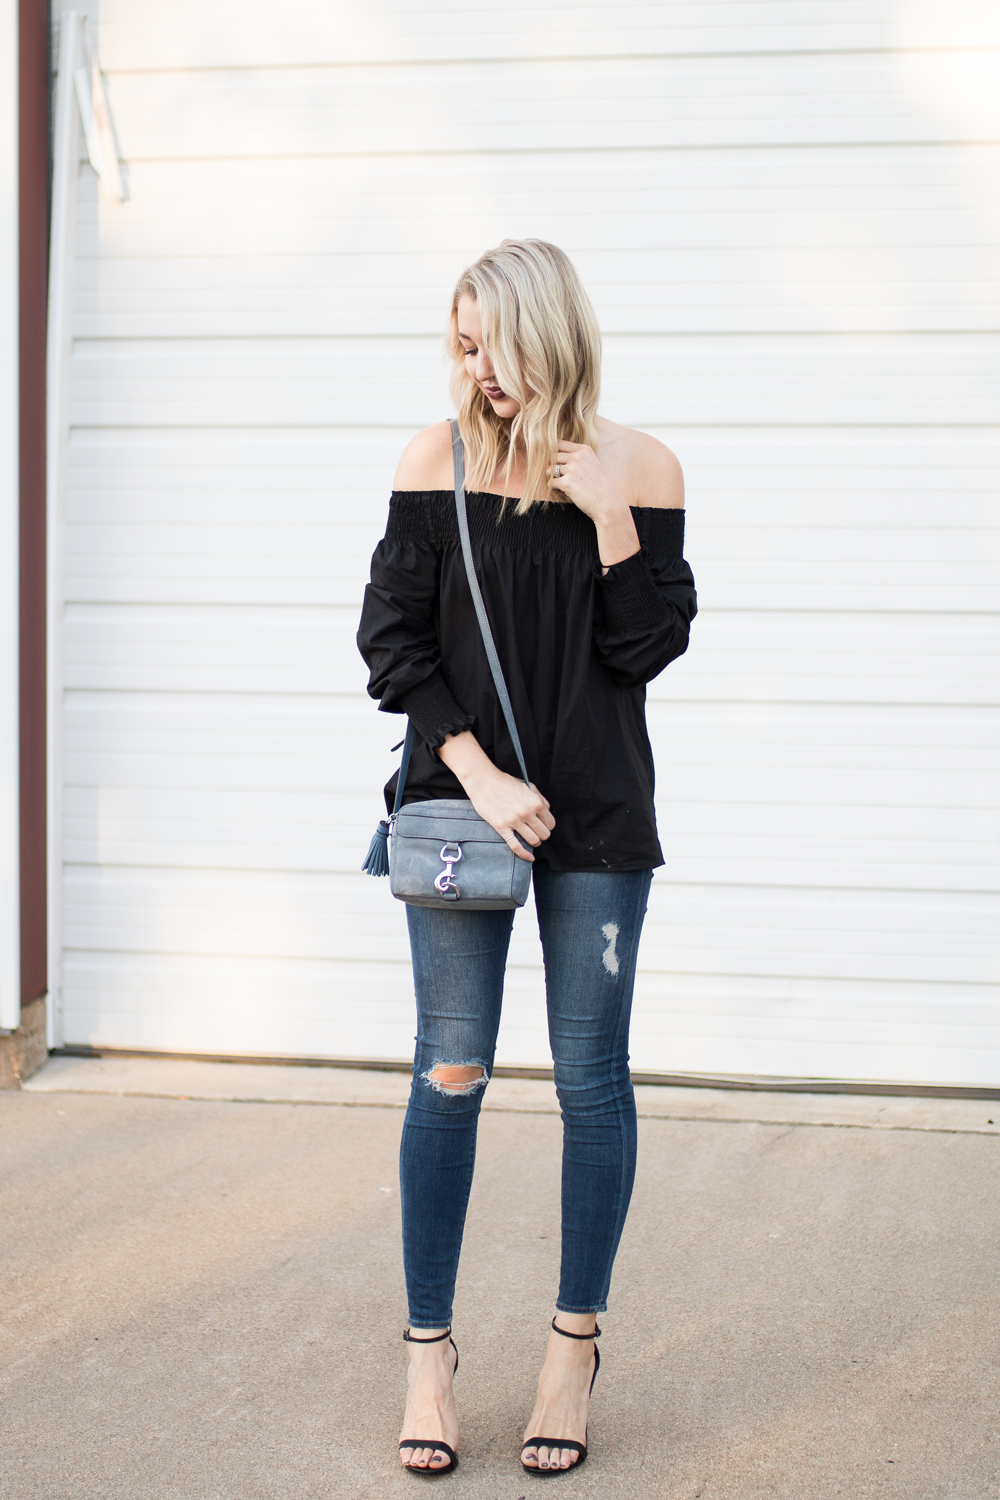 Simple but chic outfit idea: off-the-shoulder top with distressed skinnies and heels